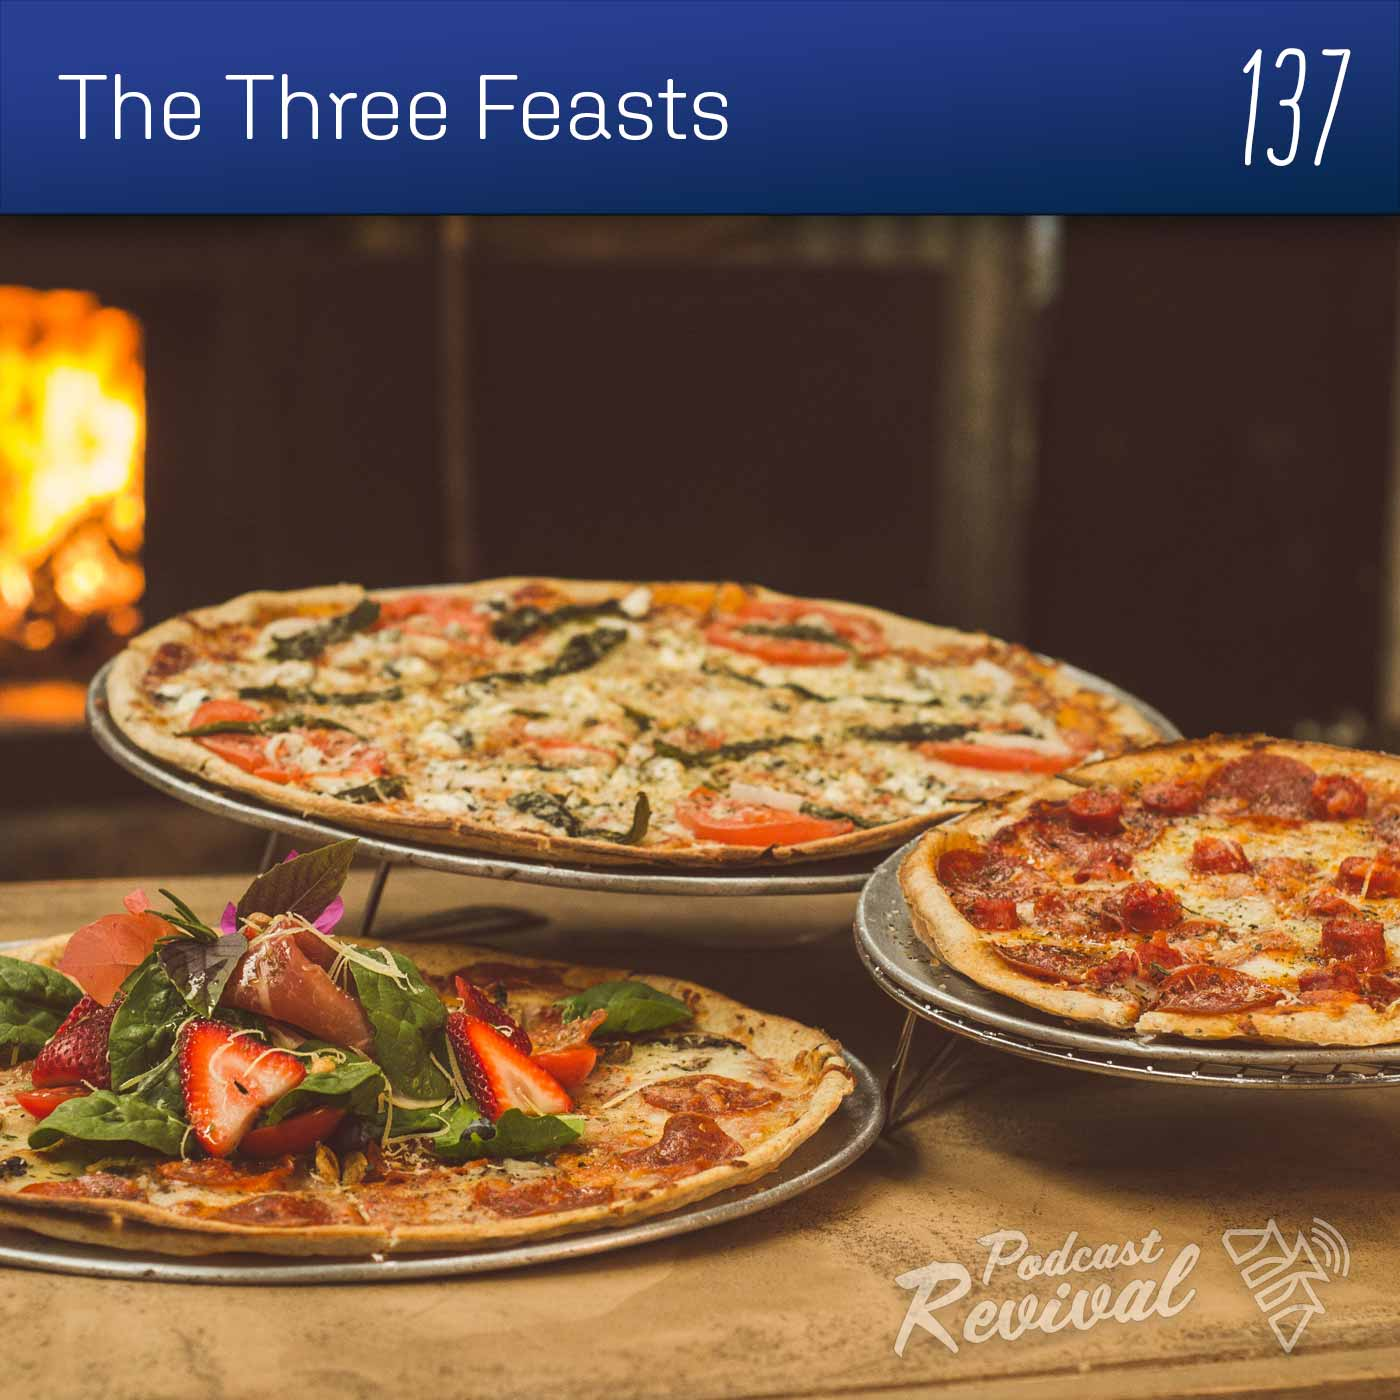 The Three Feasts